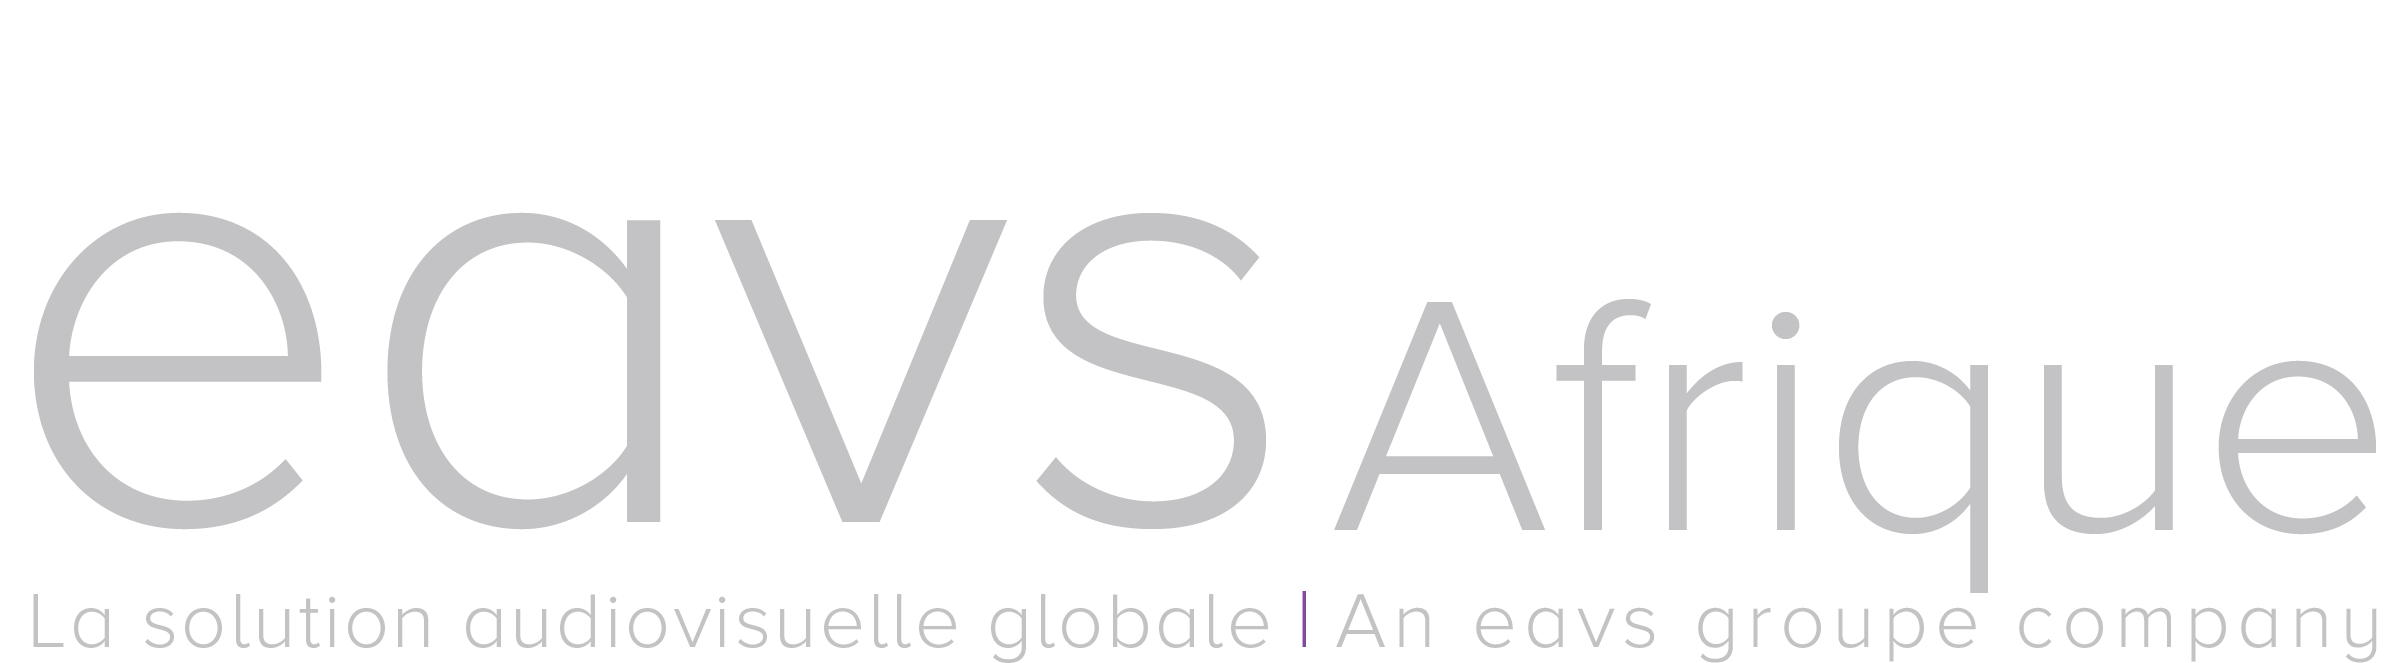 Blog EAVS Afrique La solution audiovisuelle globale